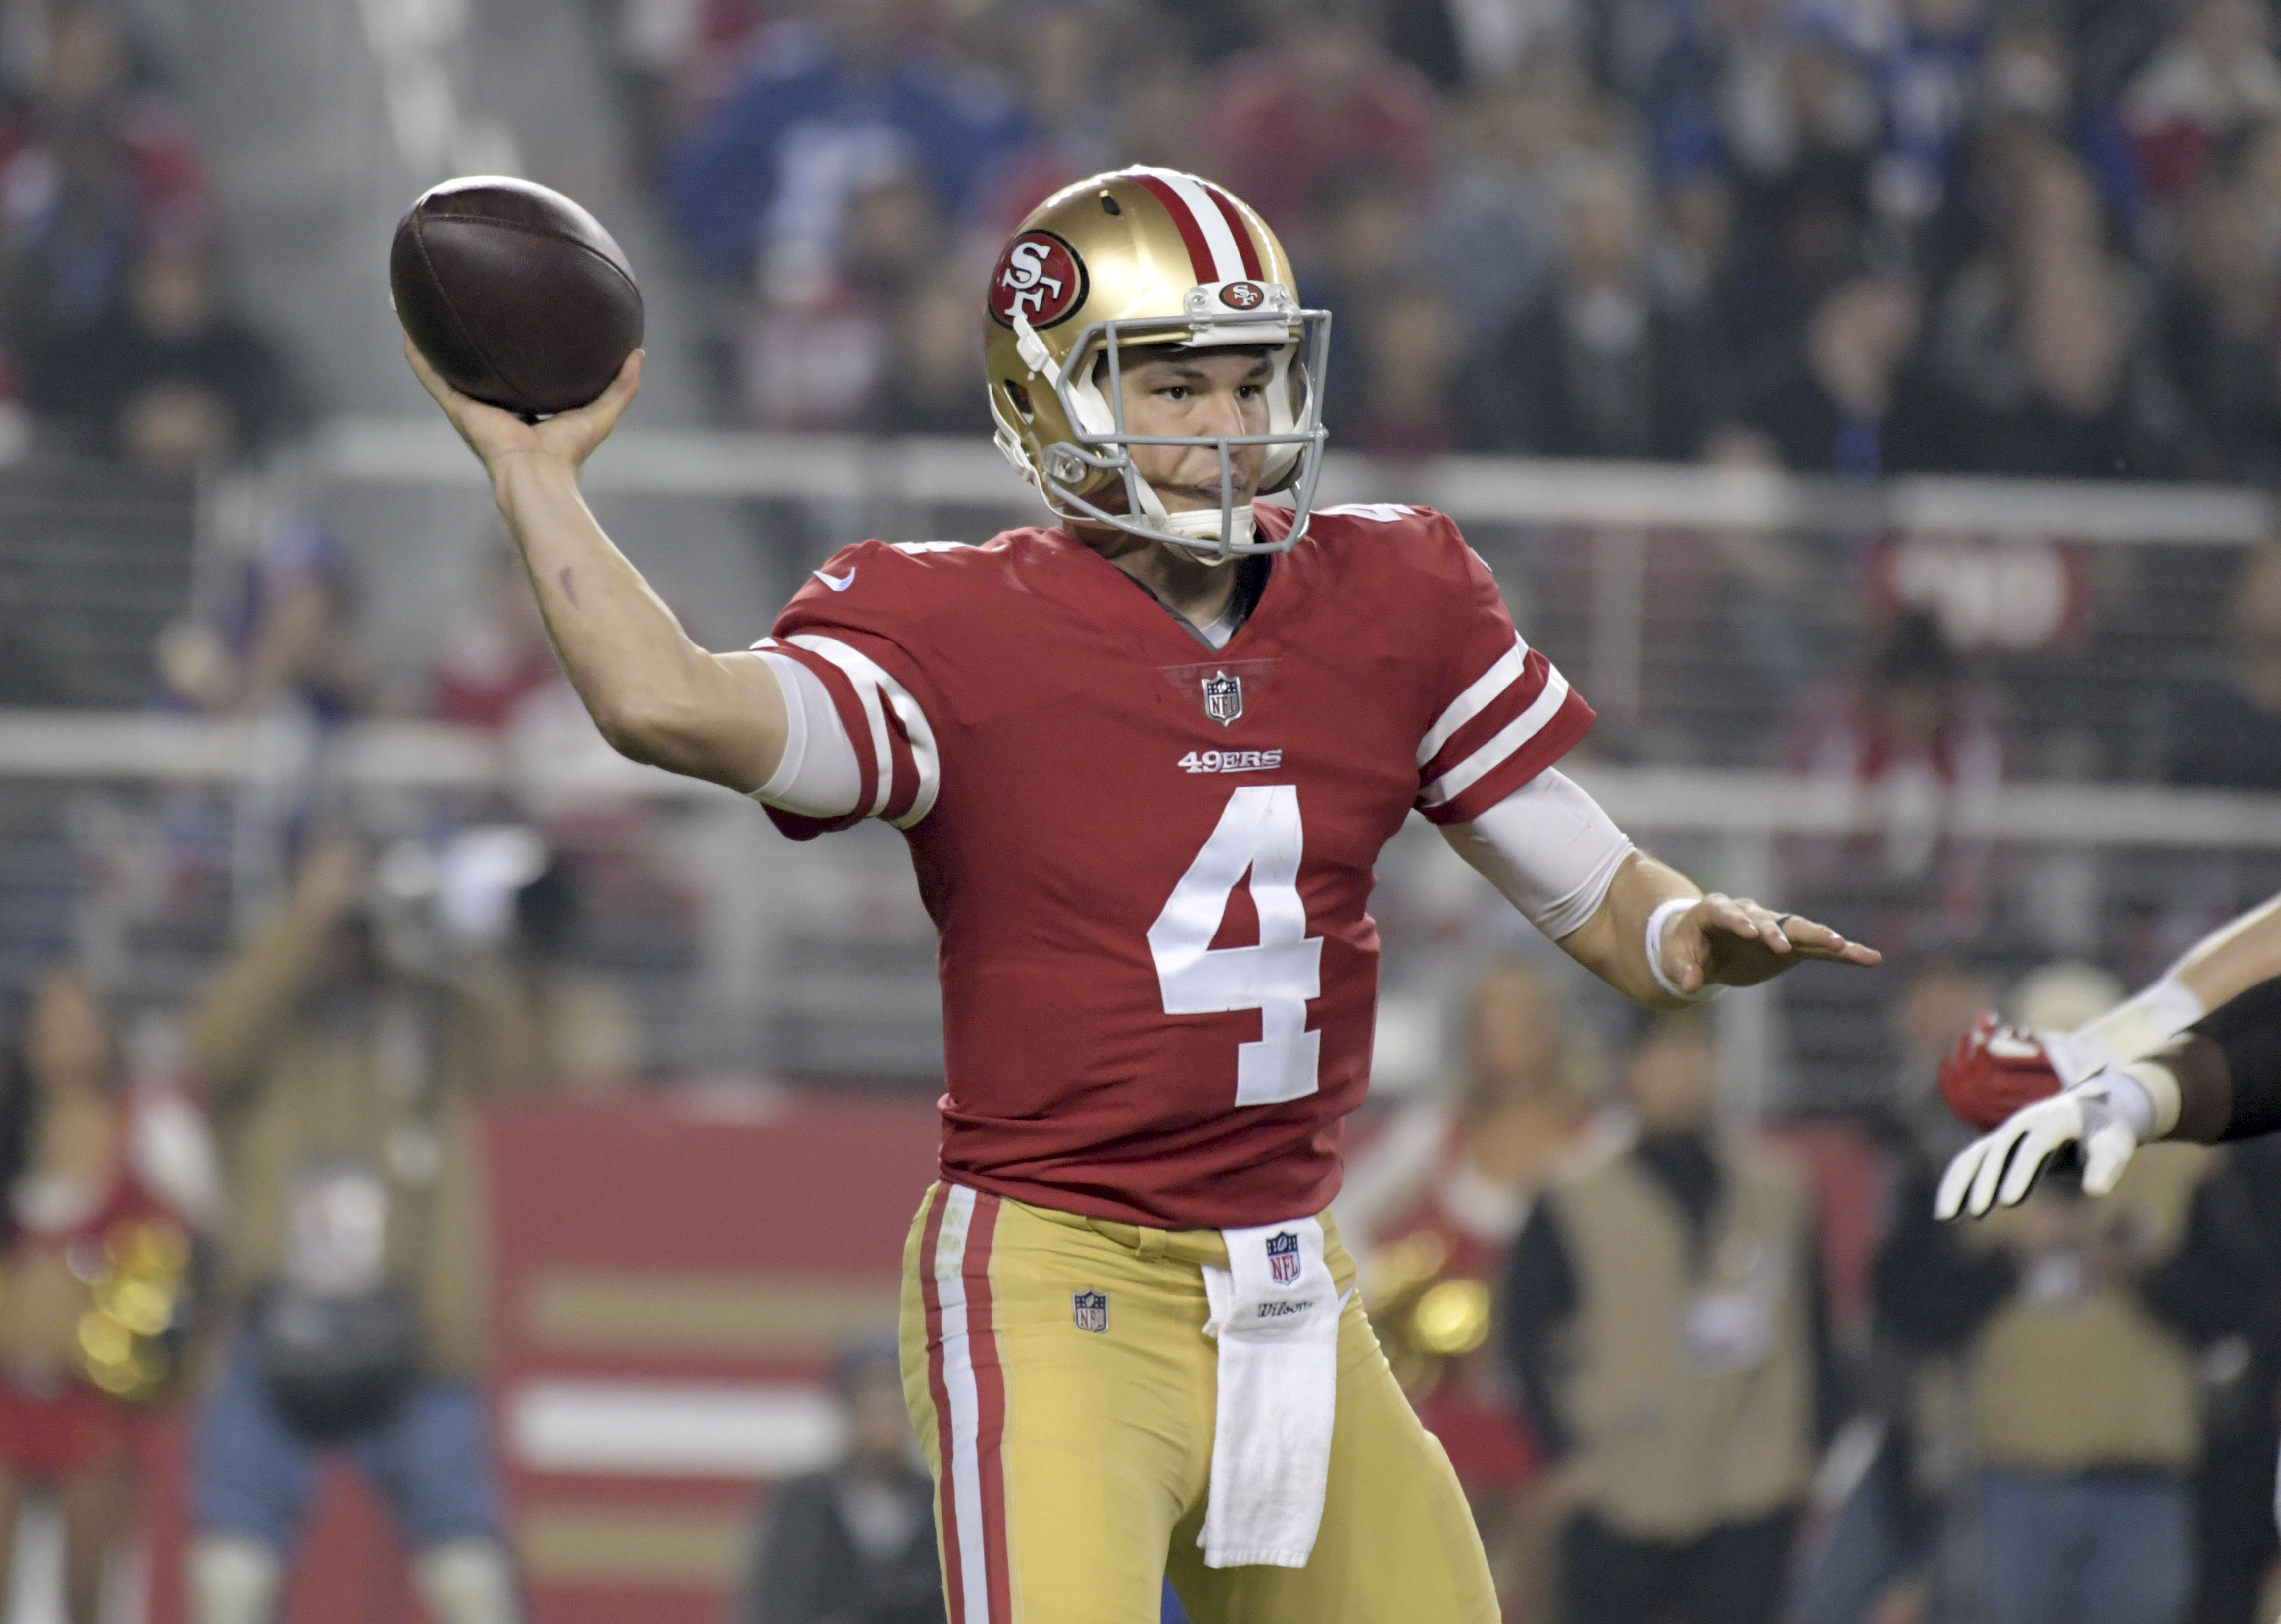 NFL: New York Giants at San Francisco 49ers